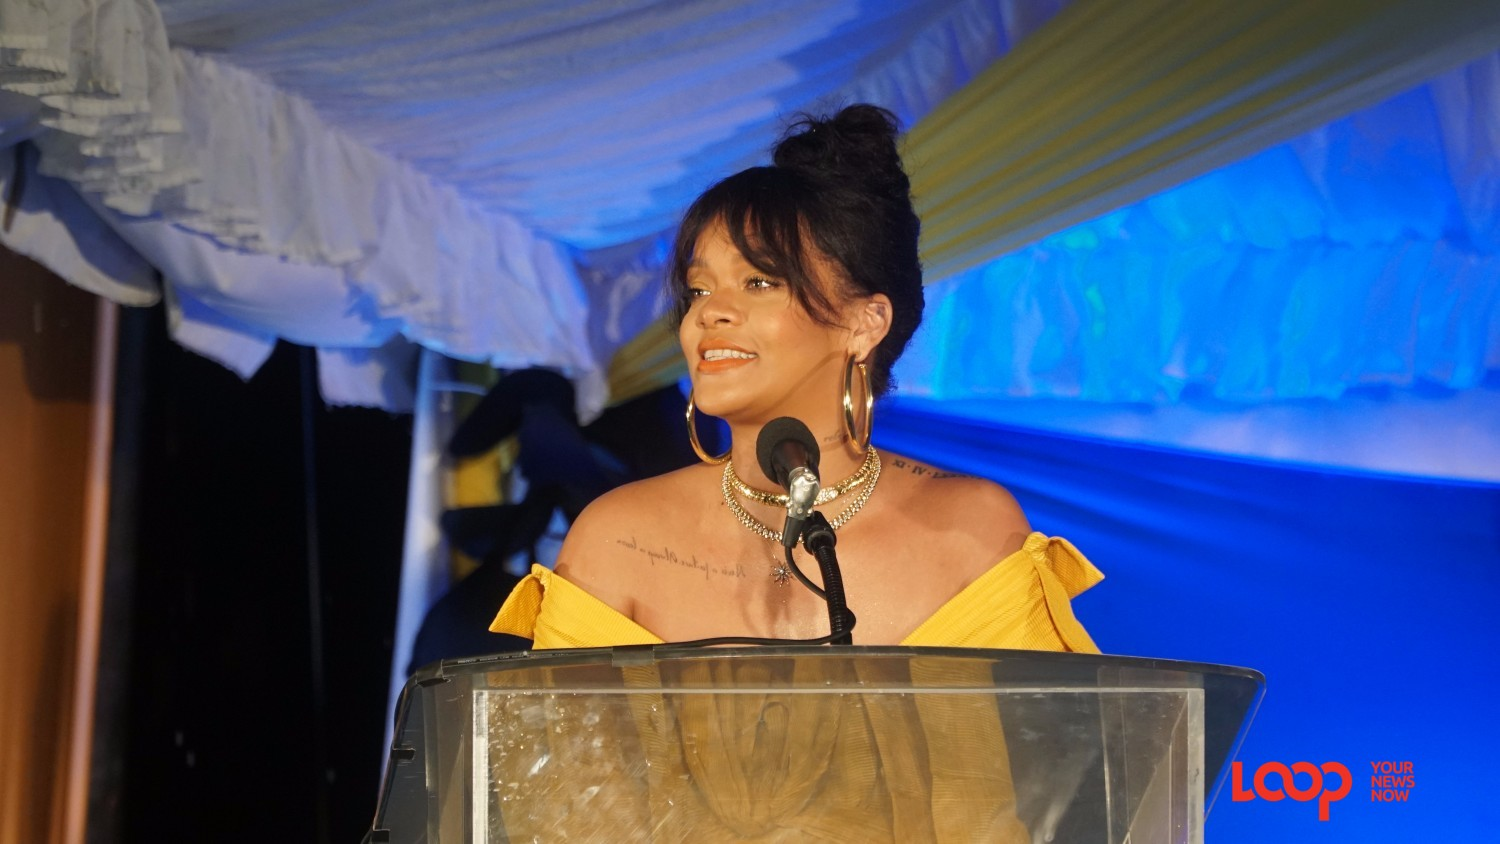 Rihanna says she is honoured.